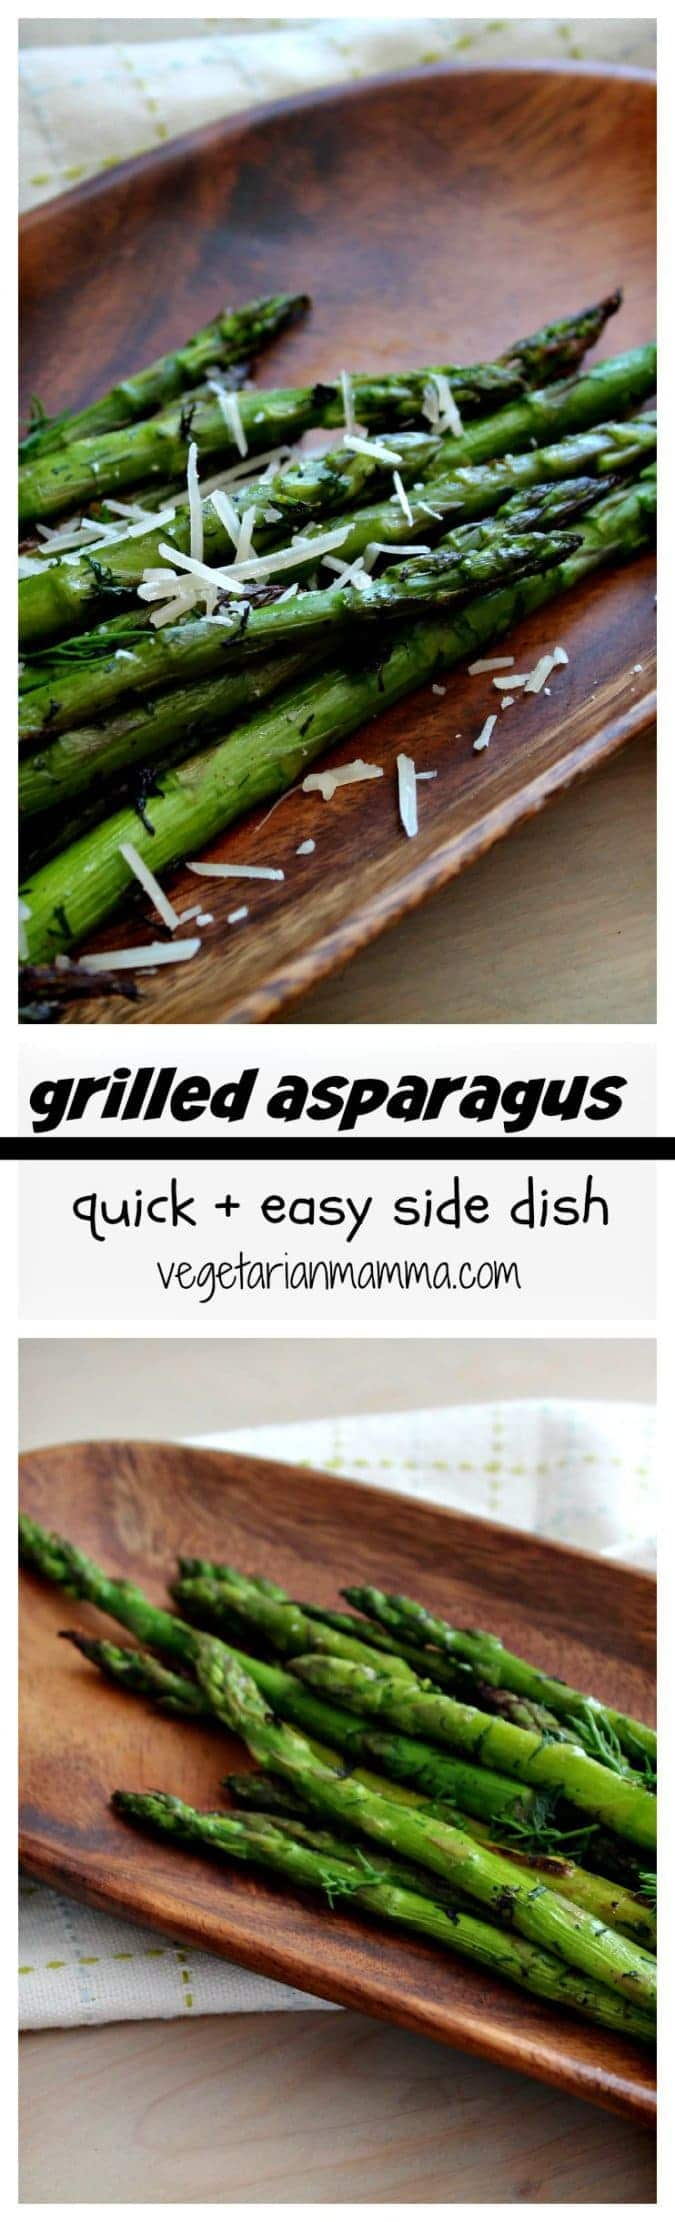 Grilled Asparagus - #glutenfree #grilling #vegetarian #asparagus @vegetarianmamma.com